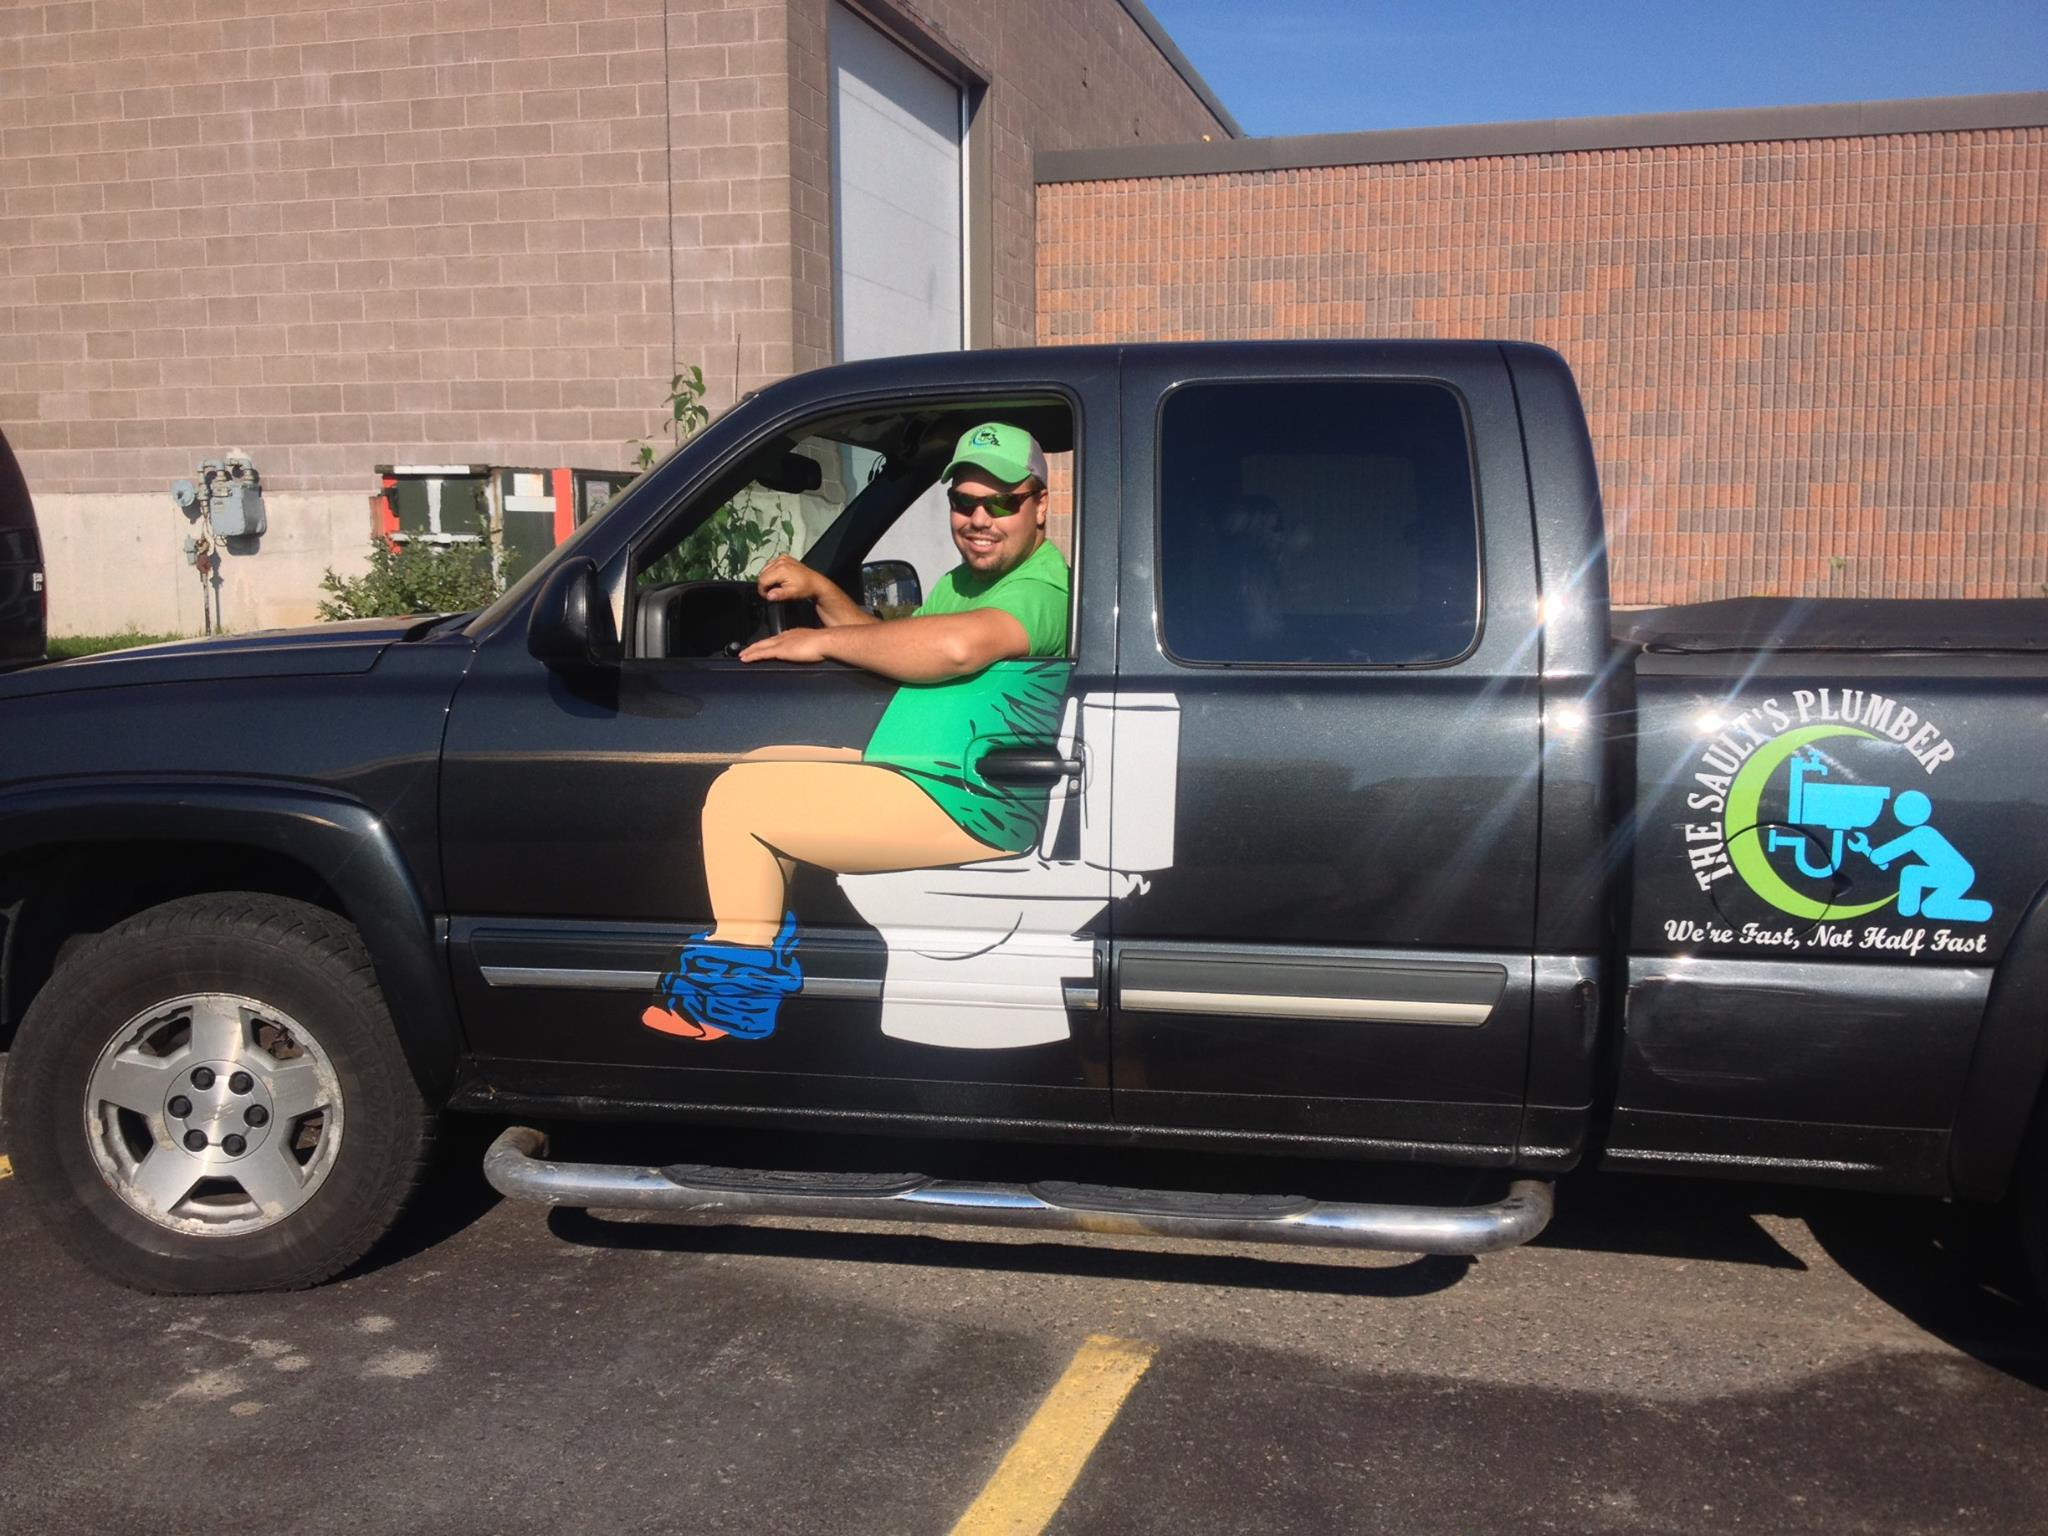 Plumber S Funny Truck Decal Is Going Viral Simplemost